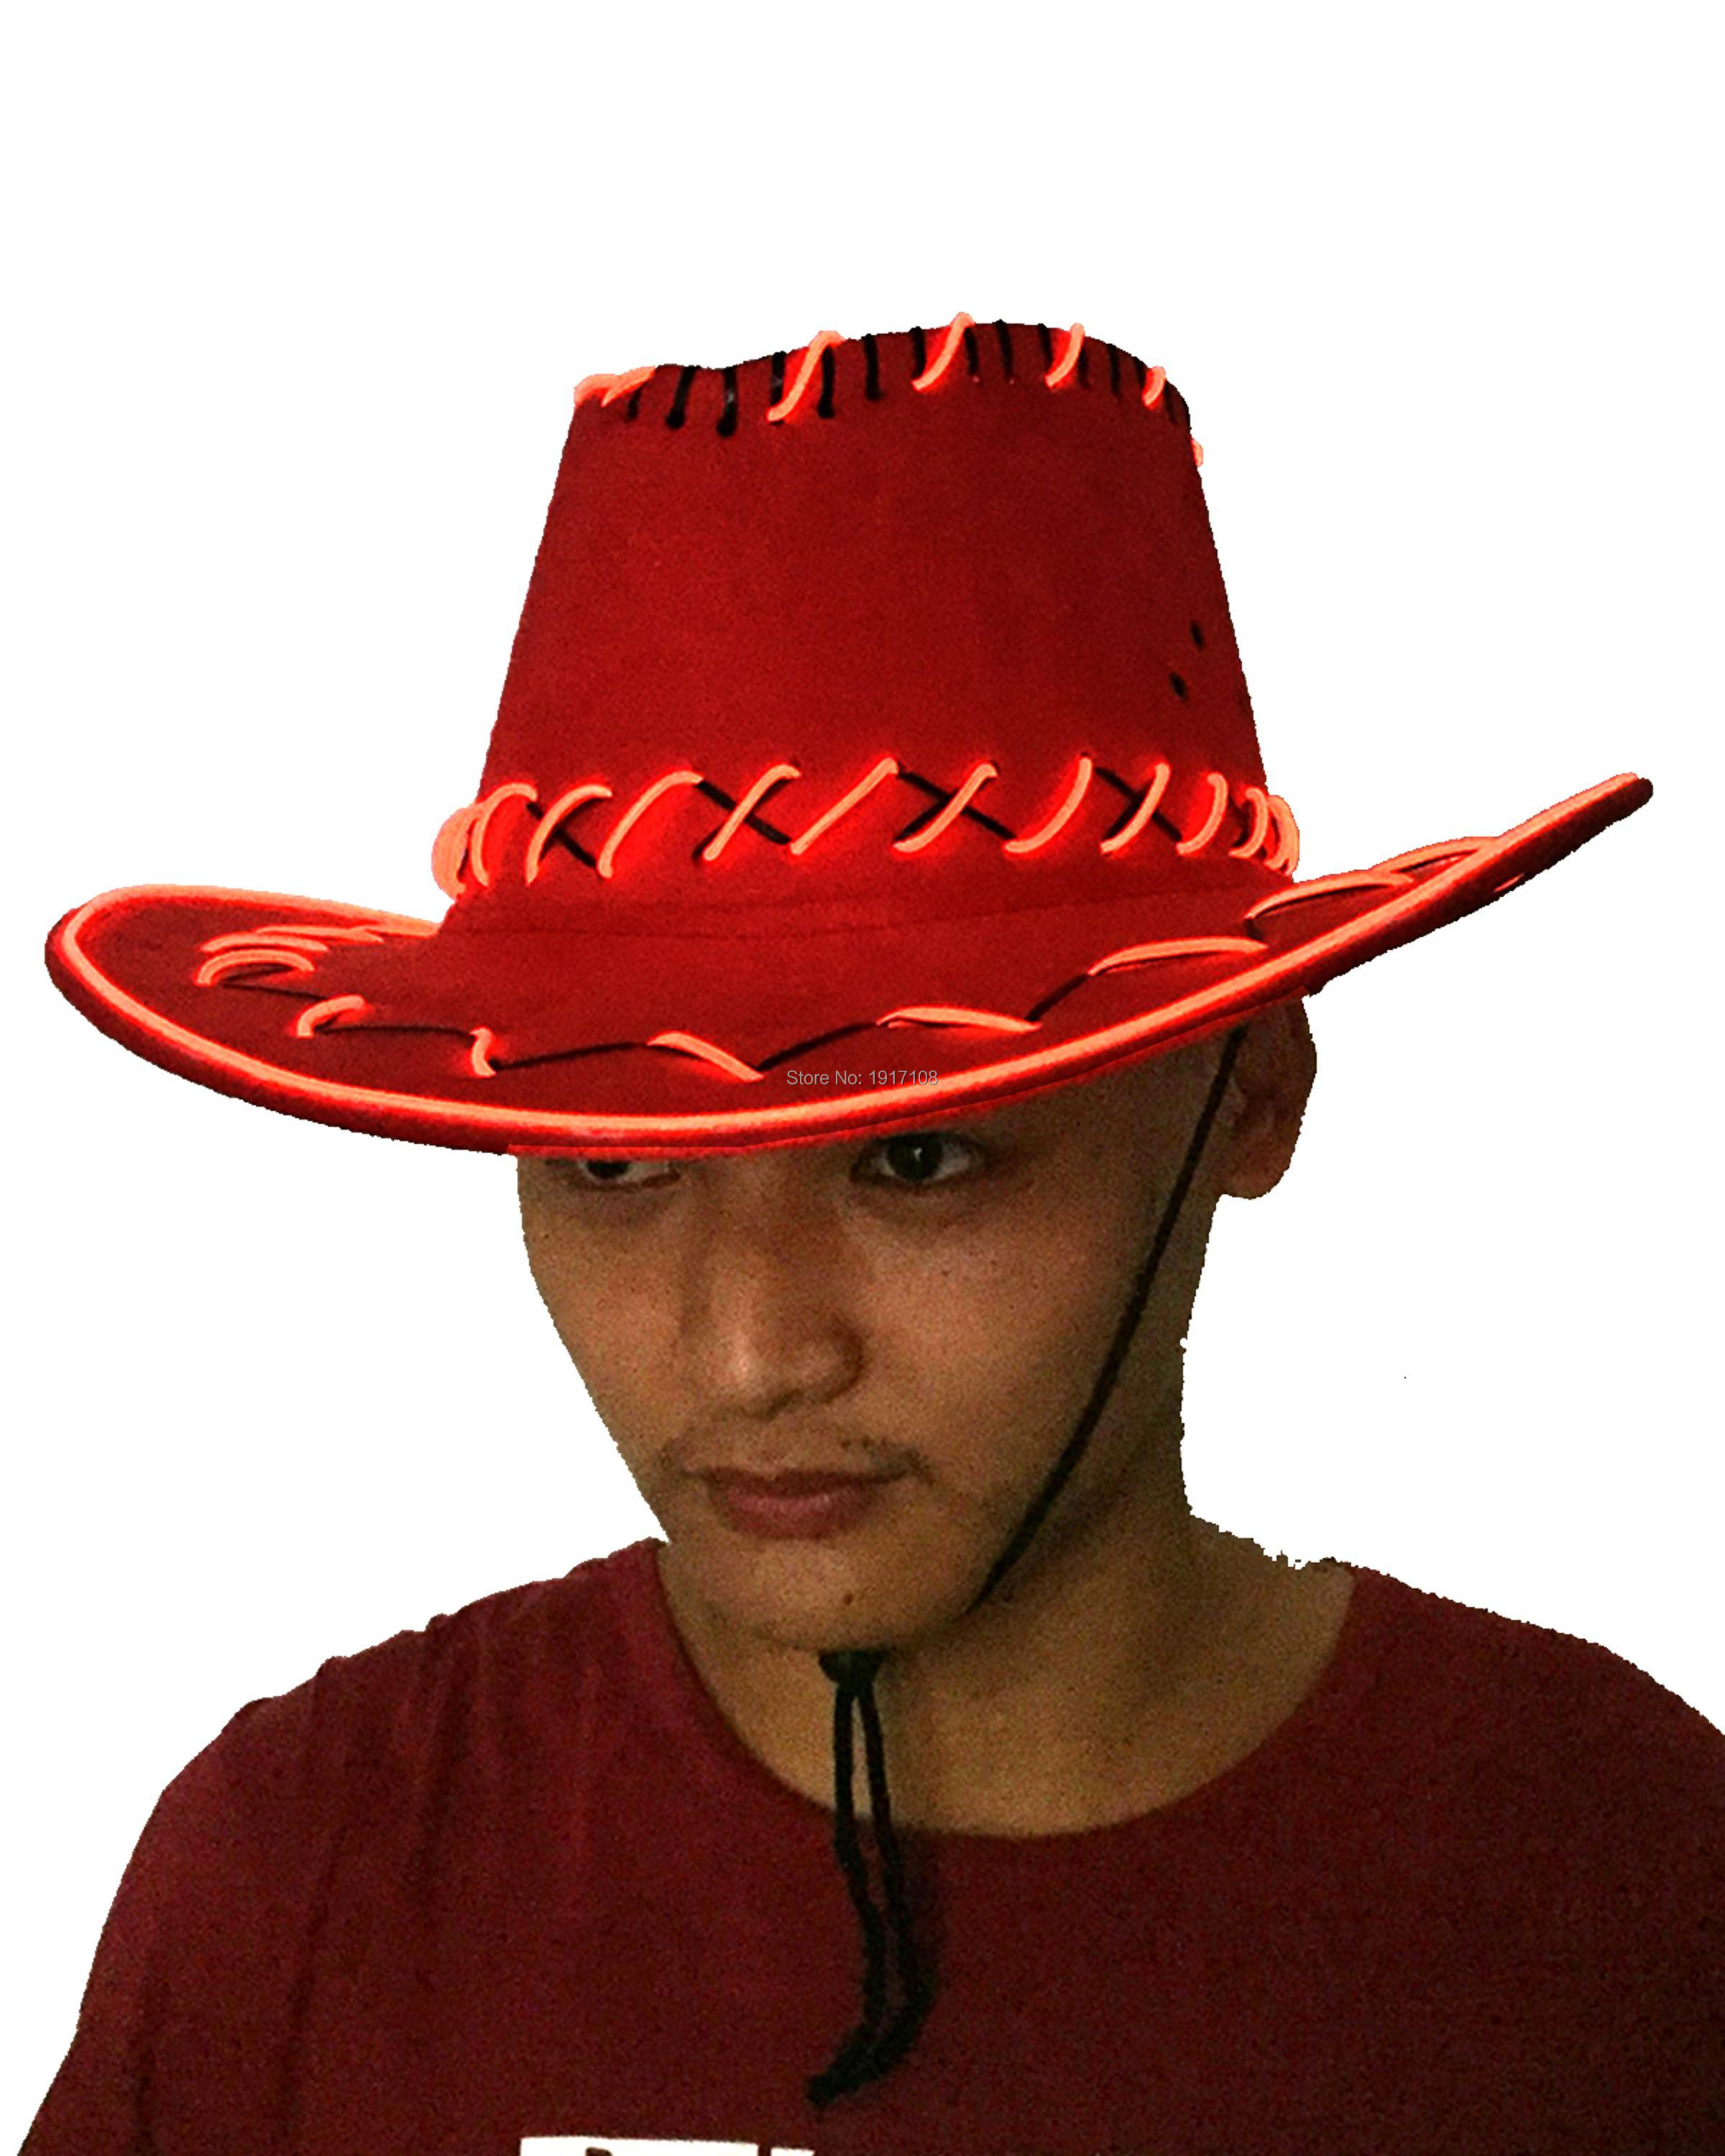 2017 Hot SalesRed Color Glowing Party Hat Lighting hat men Gift Cowboy Hats LED Cap For Wedding Decoration Free shipping